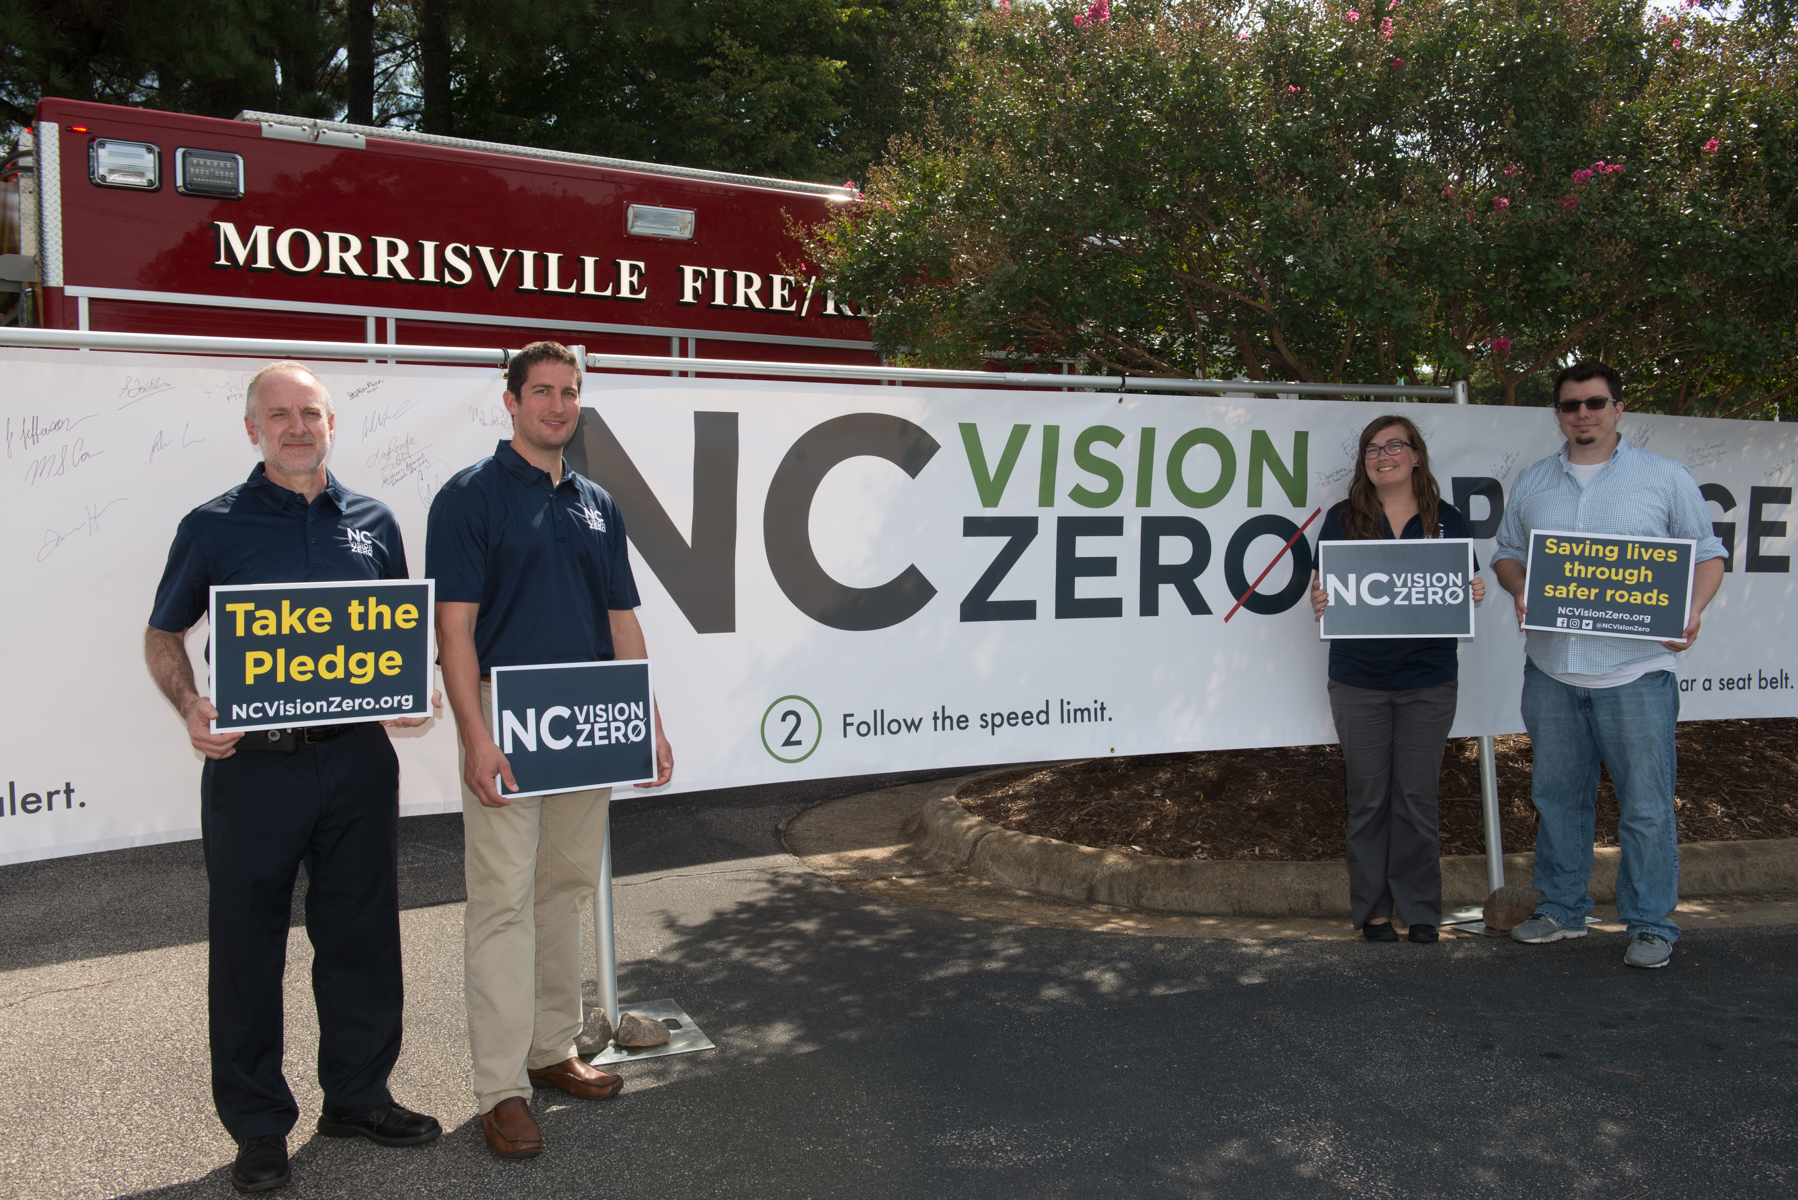 "ITRE researchers stand before an NC Vision Zero banner and a Morrisville firetruck, holding signs that read ""Take The Pledge, ncvisionzero.org"" and ""save lives through safer roads"""